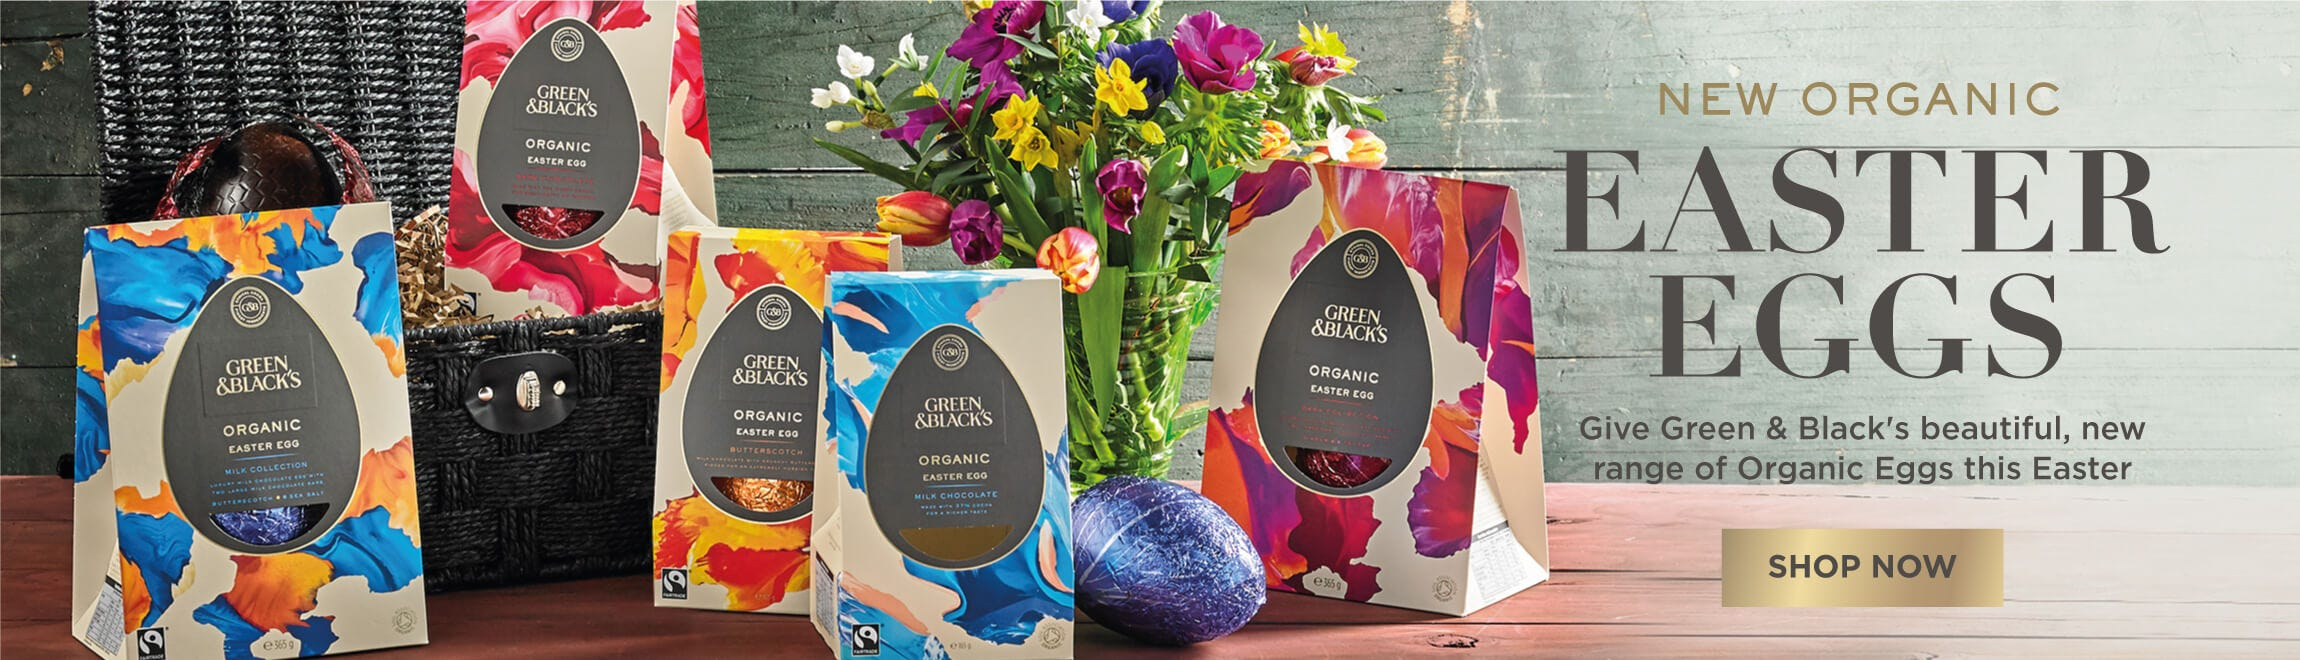 Green & Black's Easter Eggs and Easter Hampers